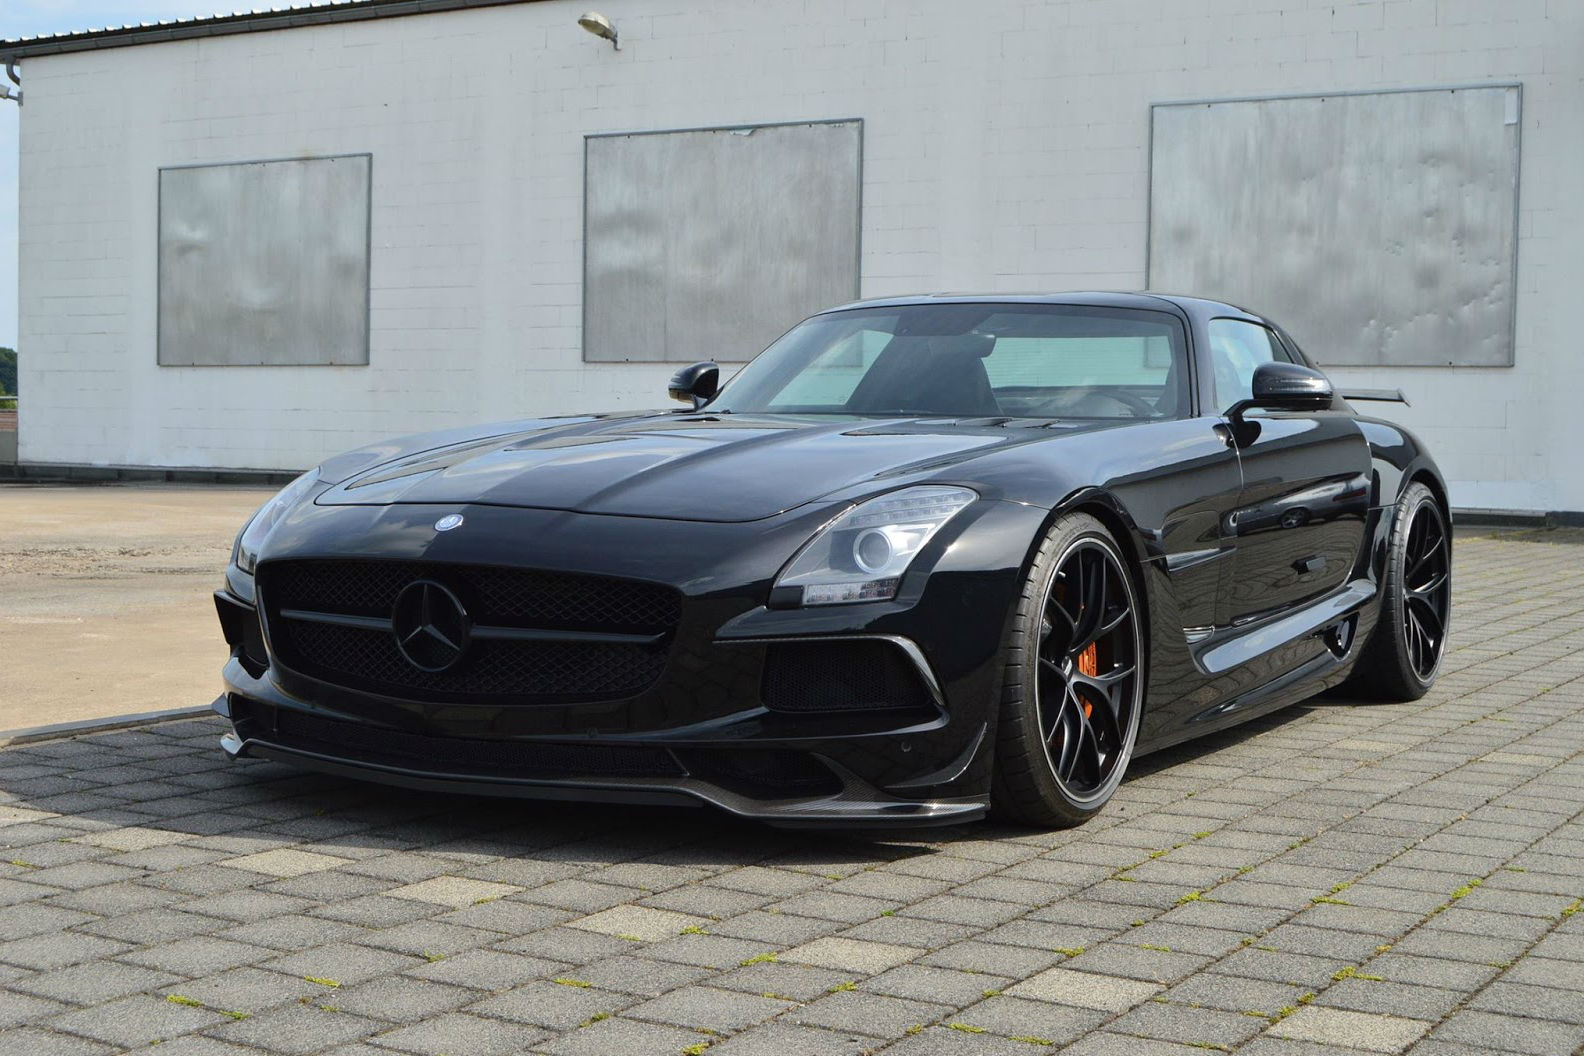 Mercedes Benz SLS AMG Black Series ...